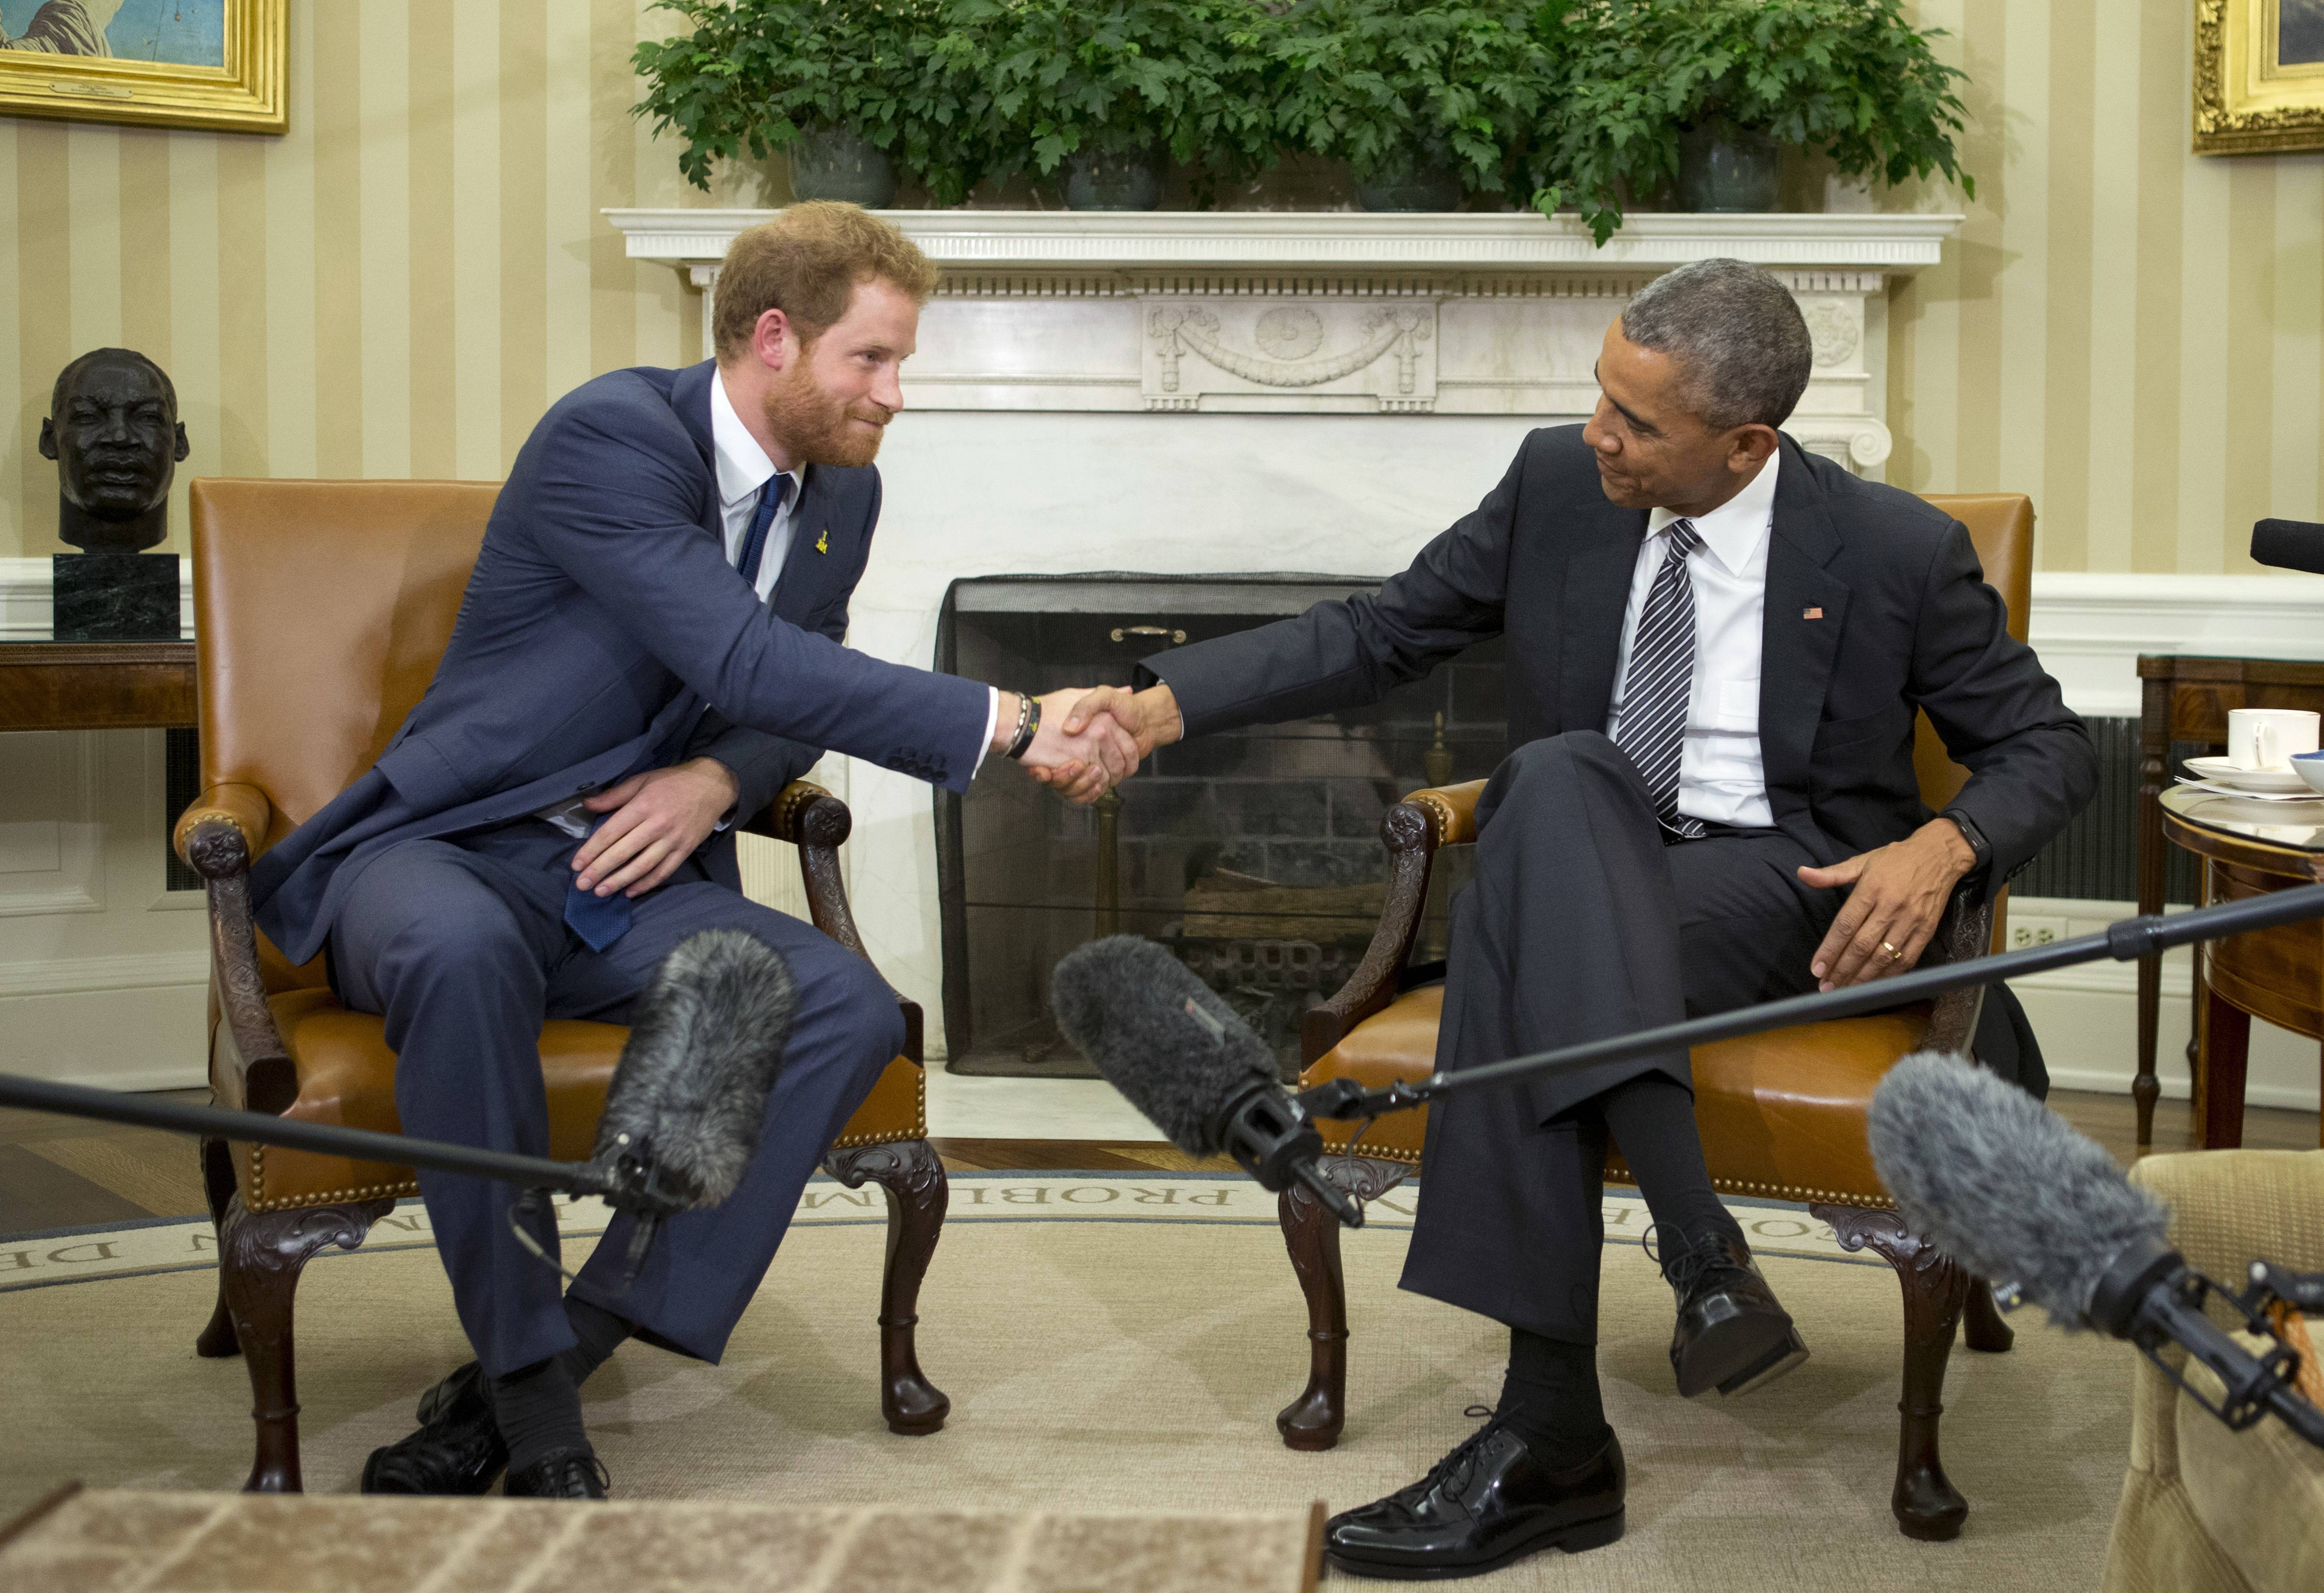 President Barack Obama, right, and Britain's Prince Harry shake hands in the Oval Office of the White House in Washington. Harry and Obama have obvious chemistry and have worked together promoting Harry's Invictus Games competition for wounded soldiers.